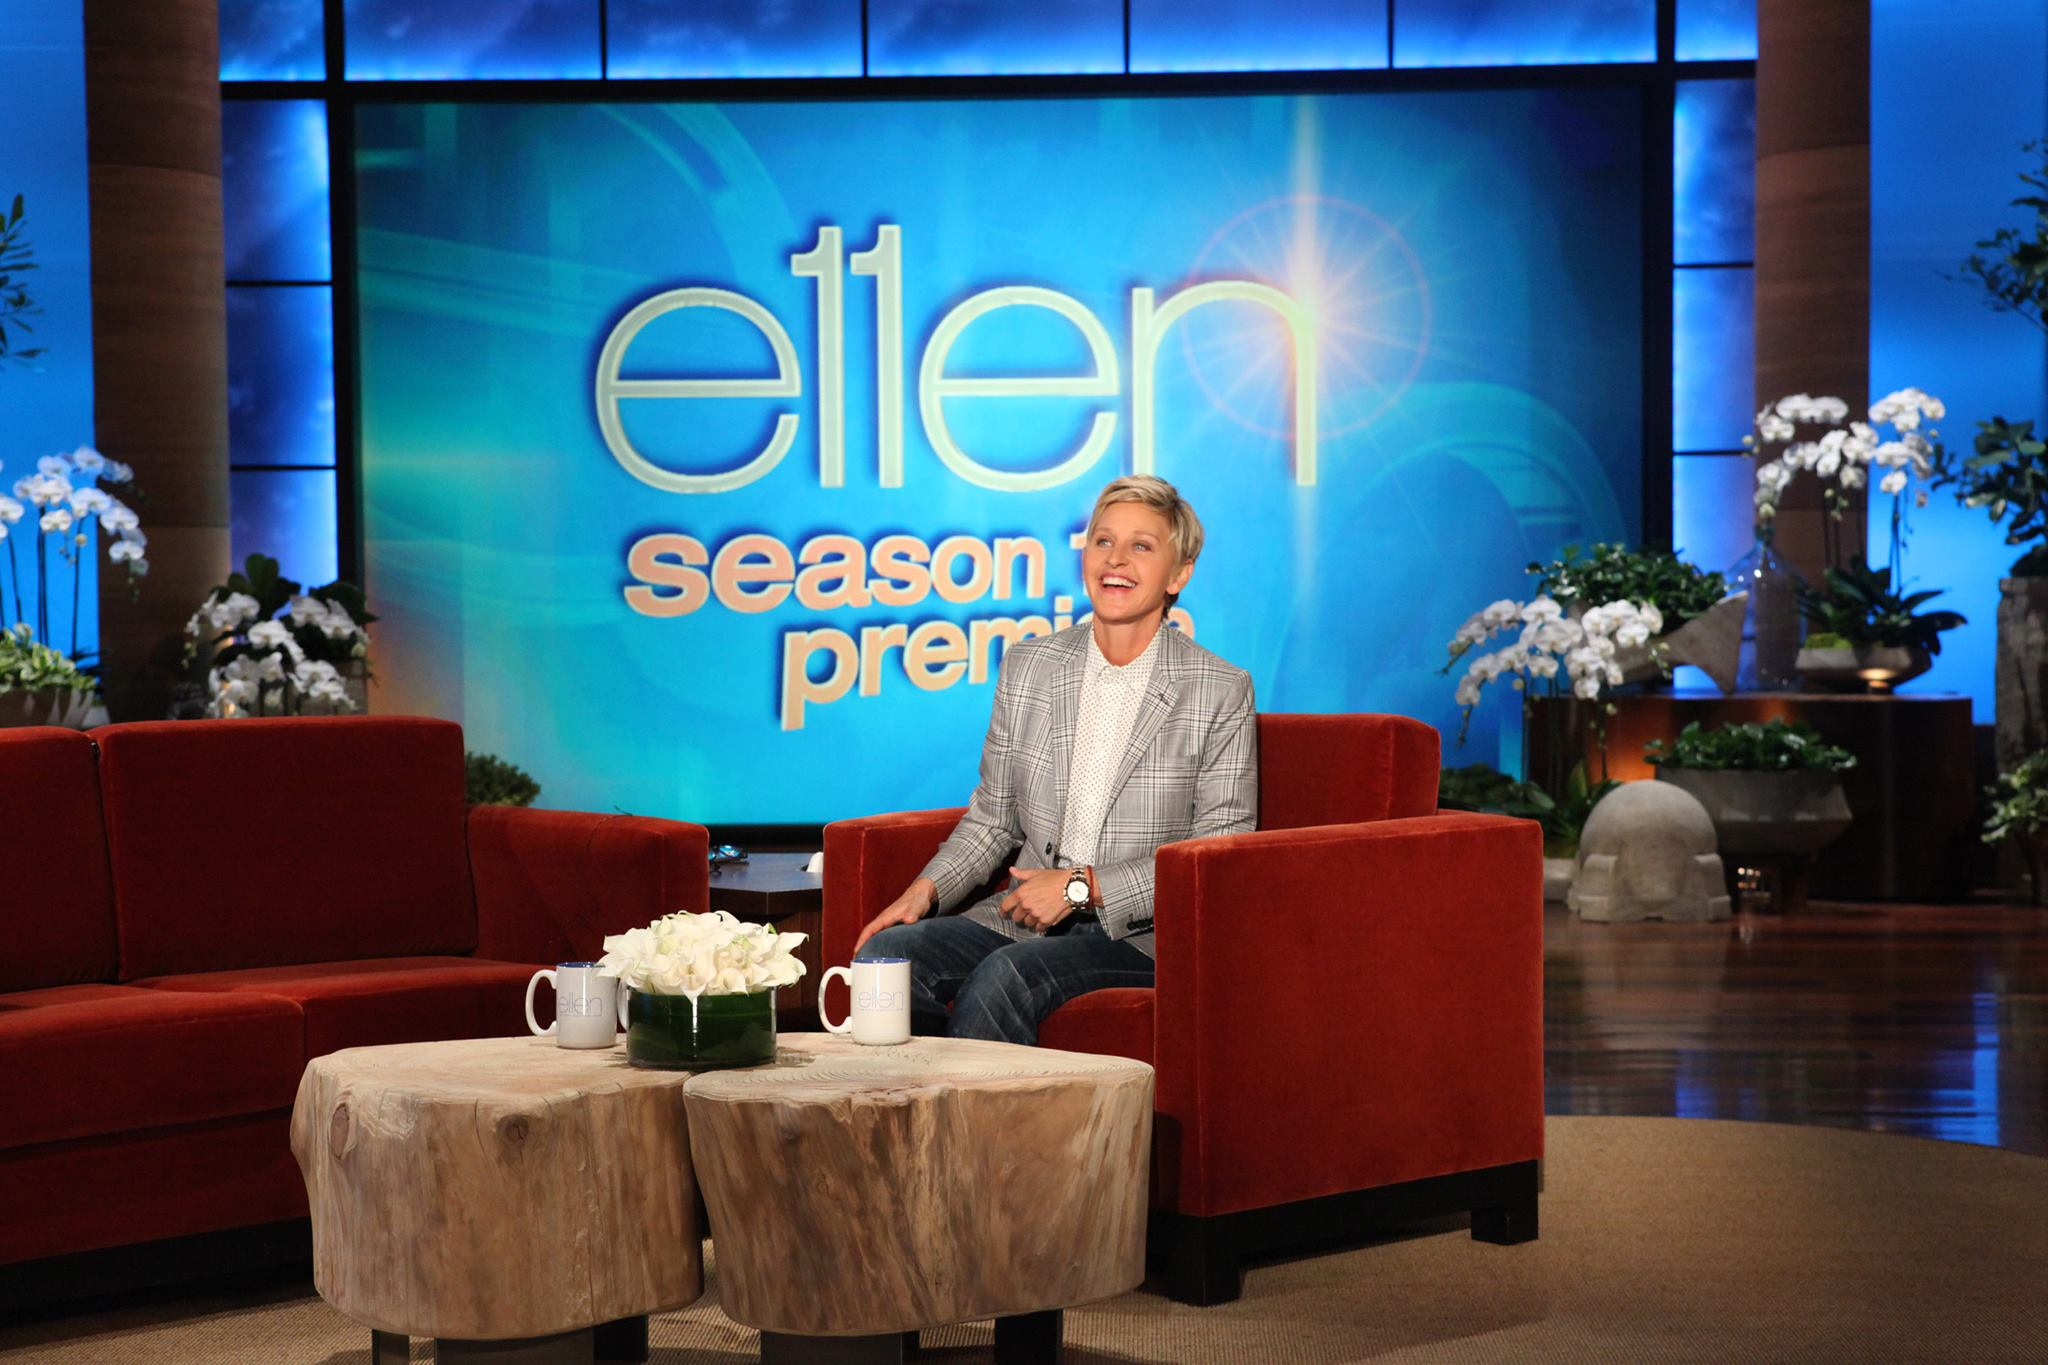 the ellen degeneres show You can contact ellen degeneres via her website, if you want ellen to know about your story, you should goto her website and fill out the necessary details and if you are lucky enough, you will receive an email or call from ellen's staff.